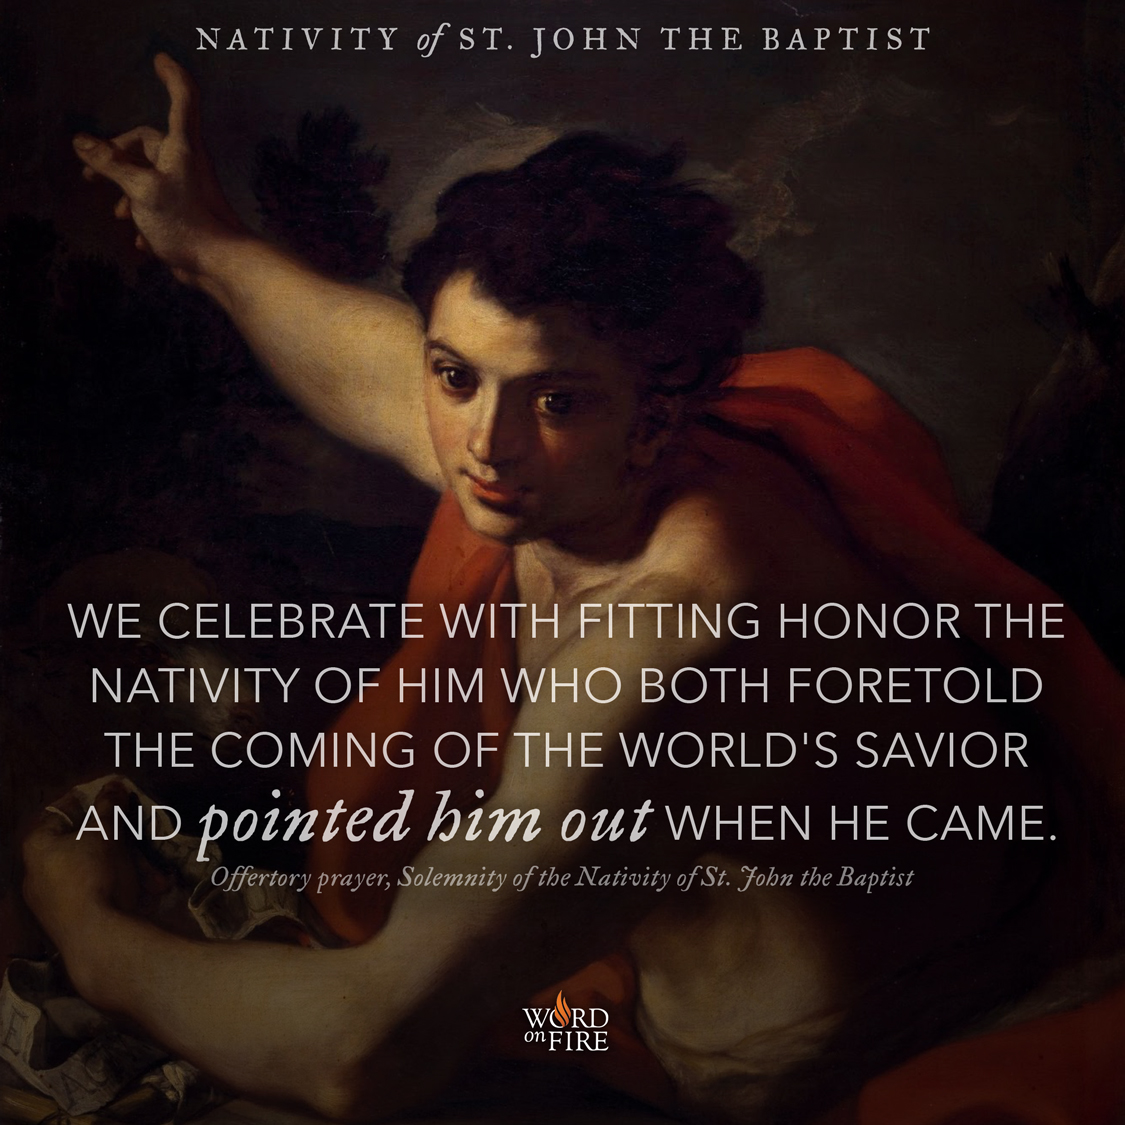 Bible Quotes About St John The Baptist: Readings & Reflections: Solemnity Of The Nativity Of Saint